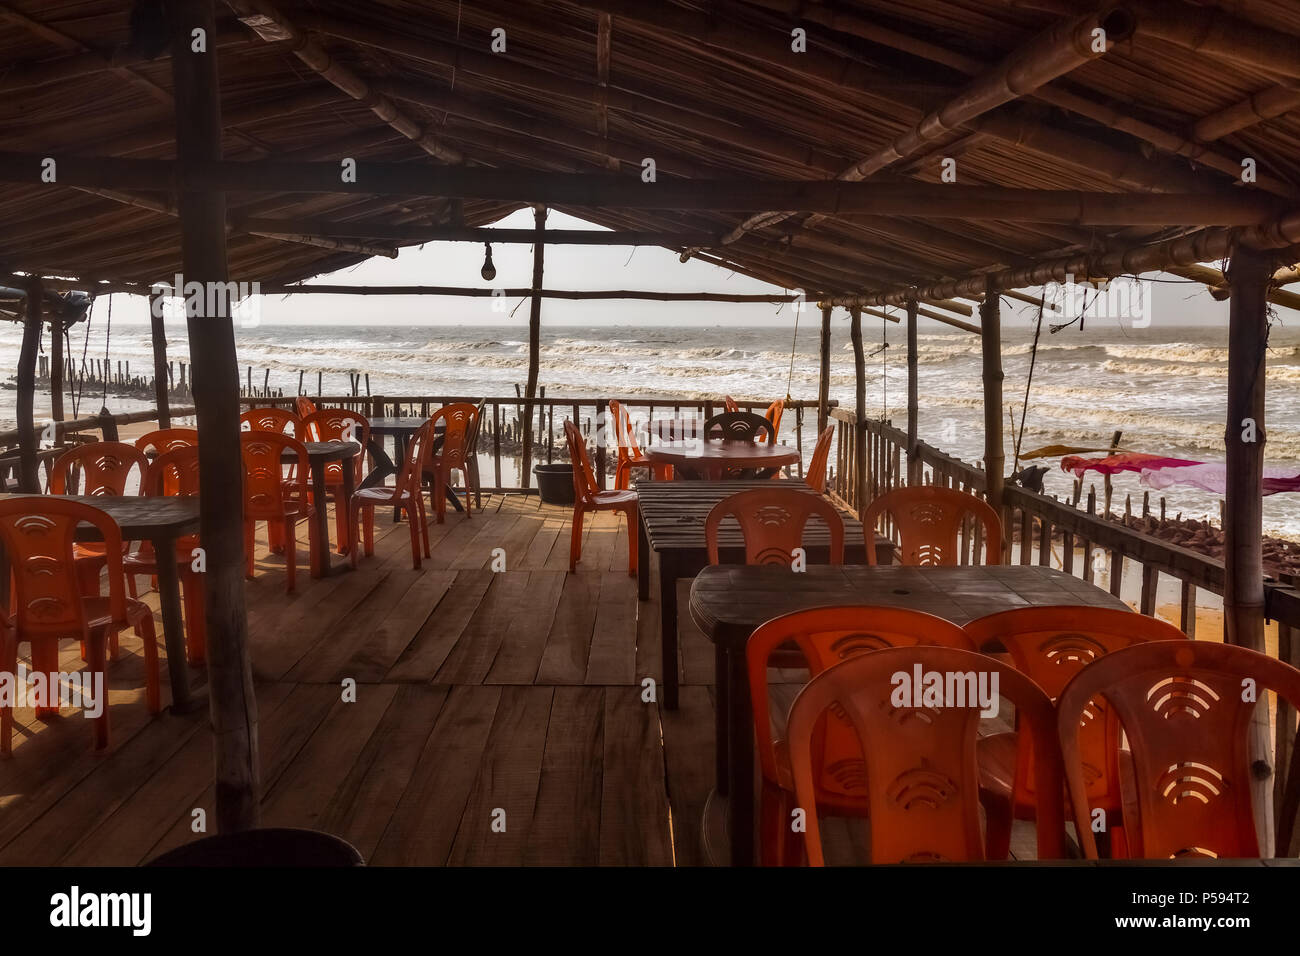 Interior view of a local beach restaurant with plastic chairs thatched roof and wooden floor with view of the sea beach at Talsari West Bengal, India. - Stock Image